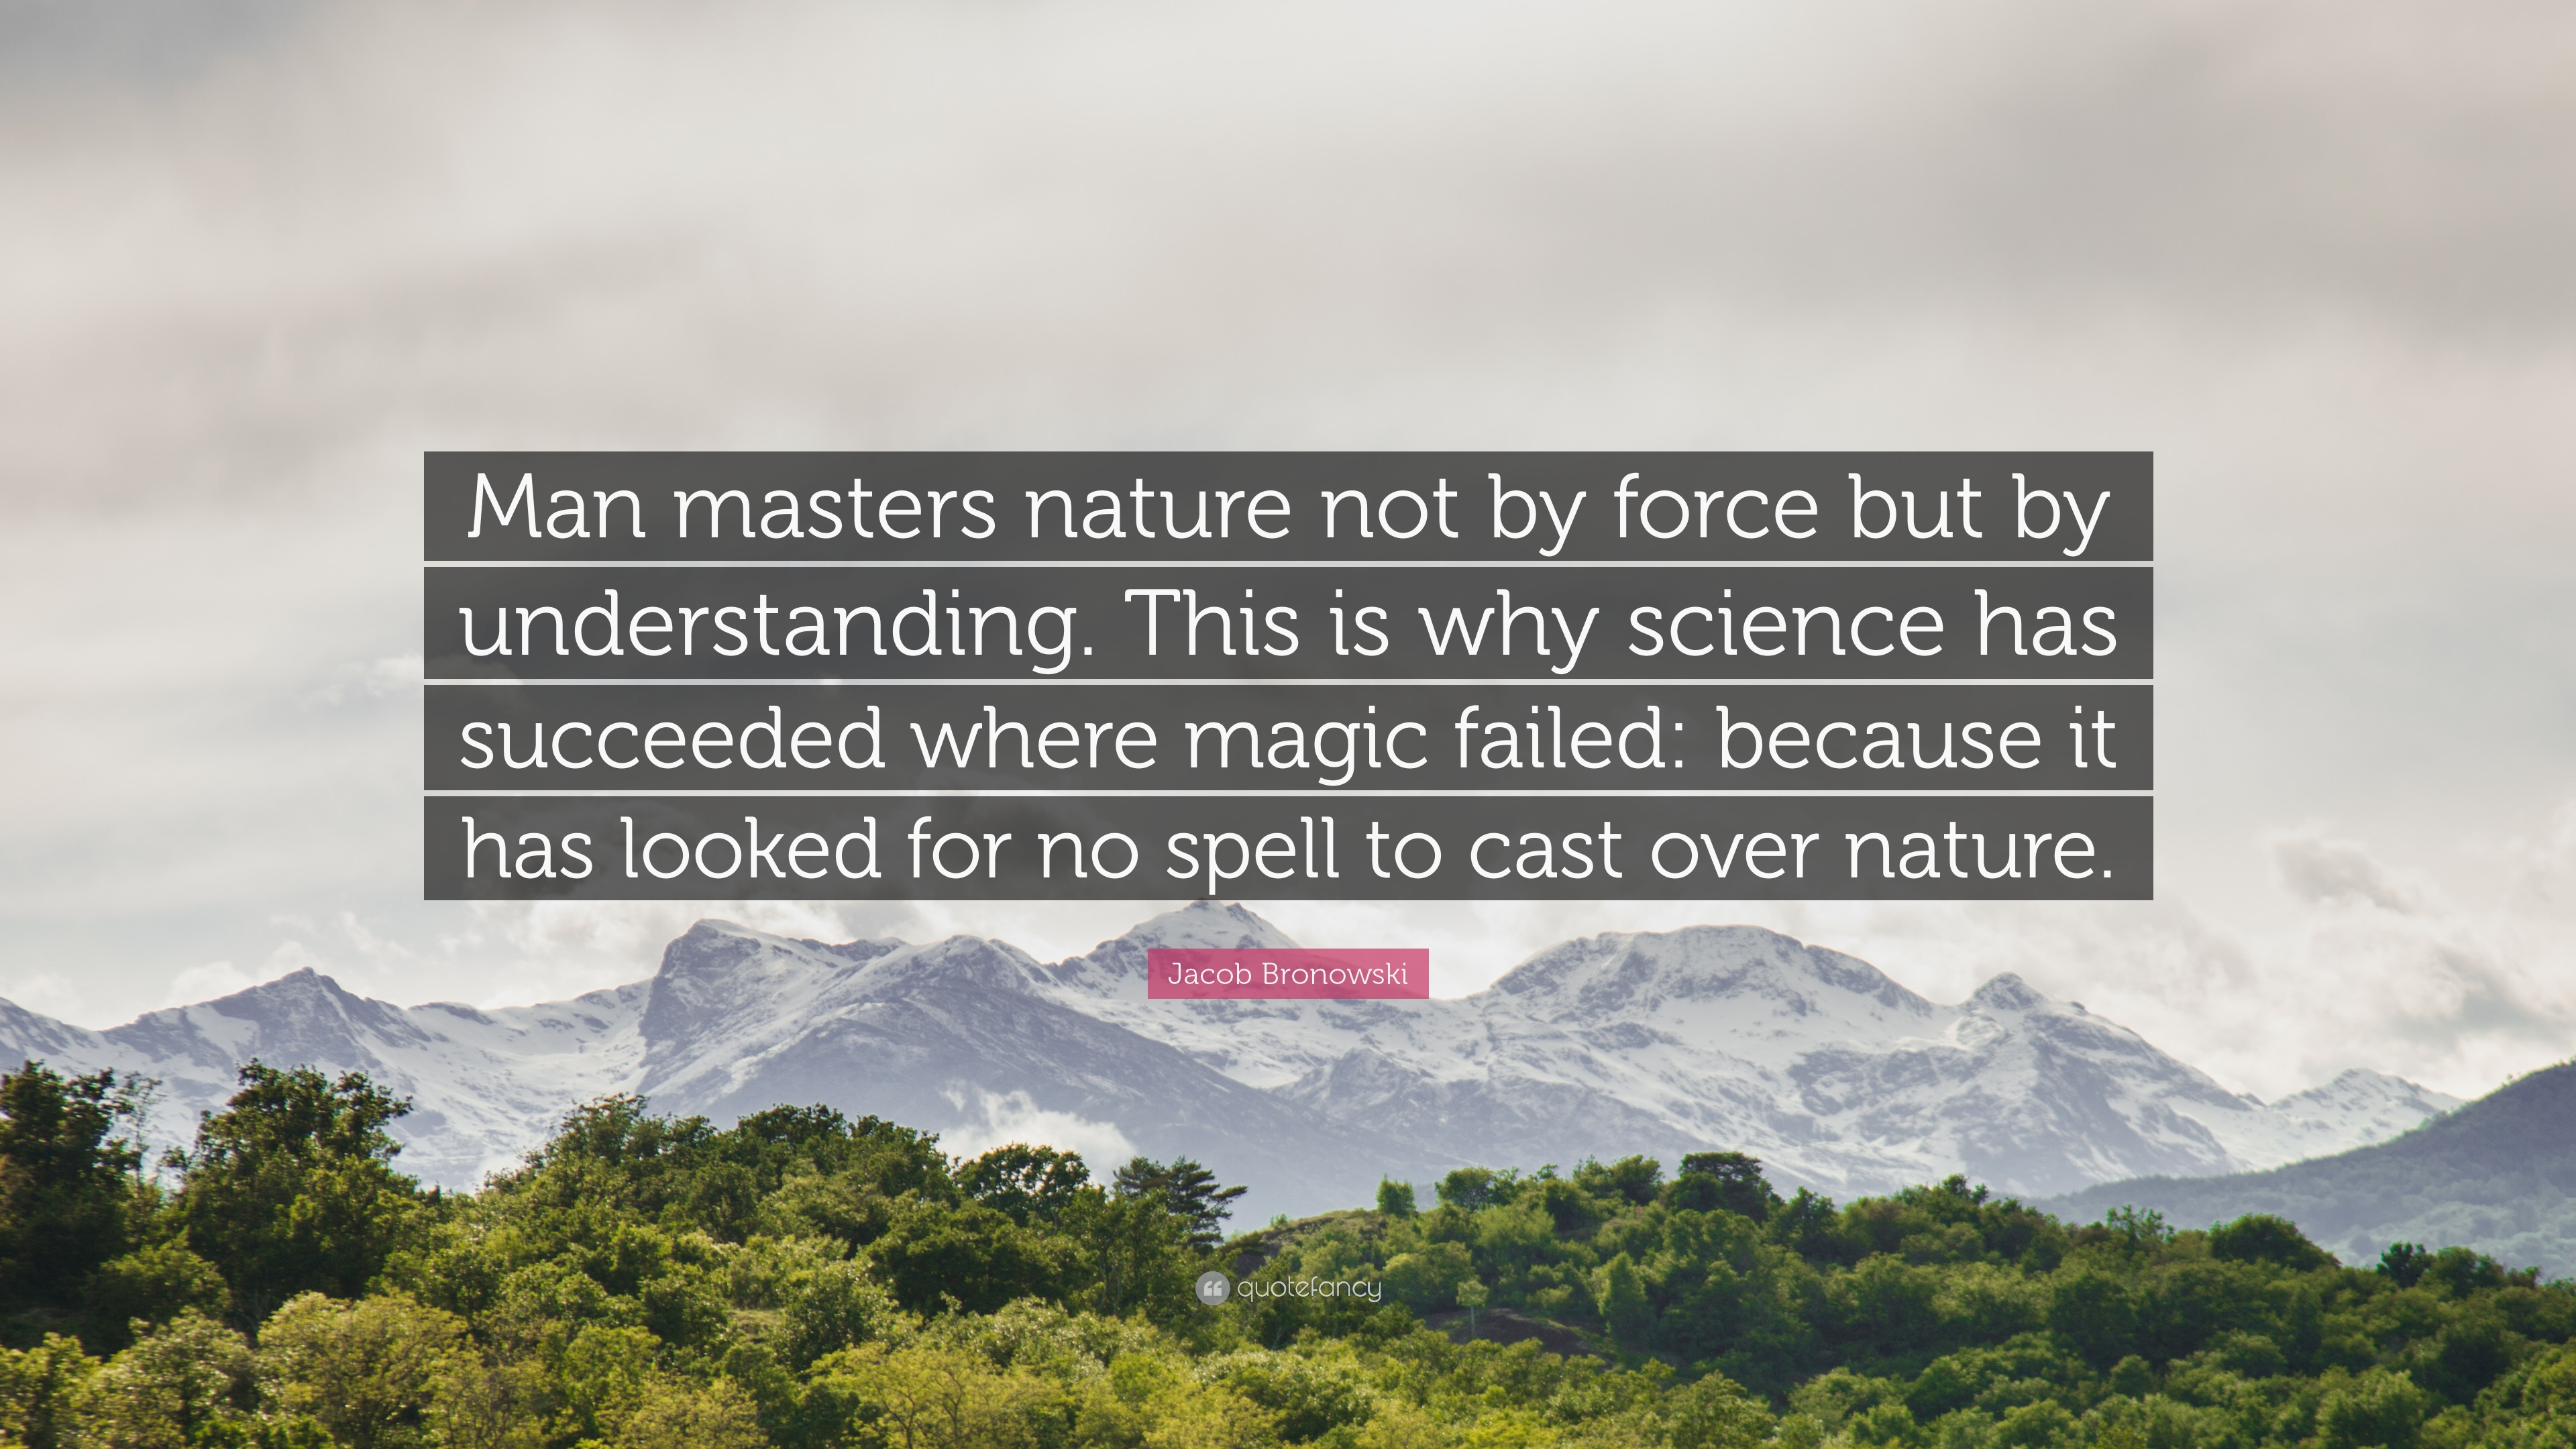 essay on man and nature by j.bronowski Man and nature quotes collection best man and nature quotes selected by  thousands of our users  jacob bronowski wisdom, nature, men universities.